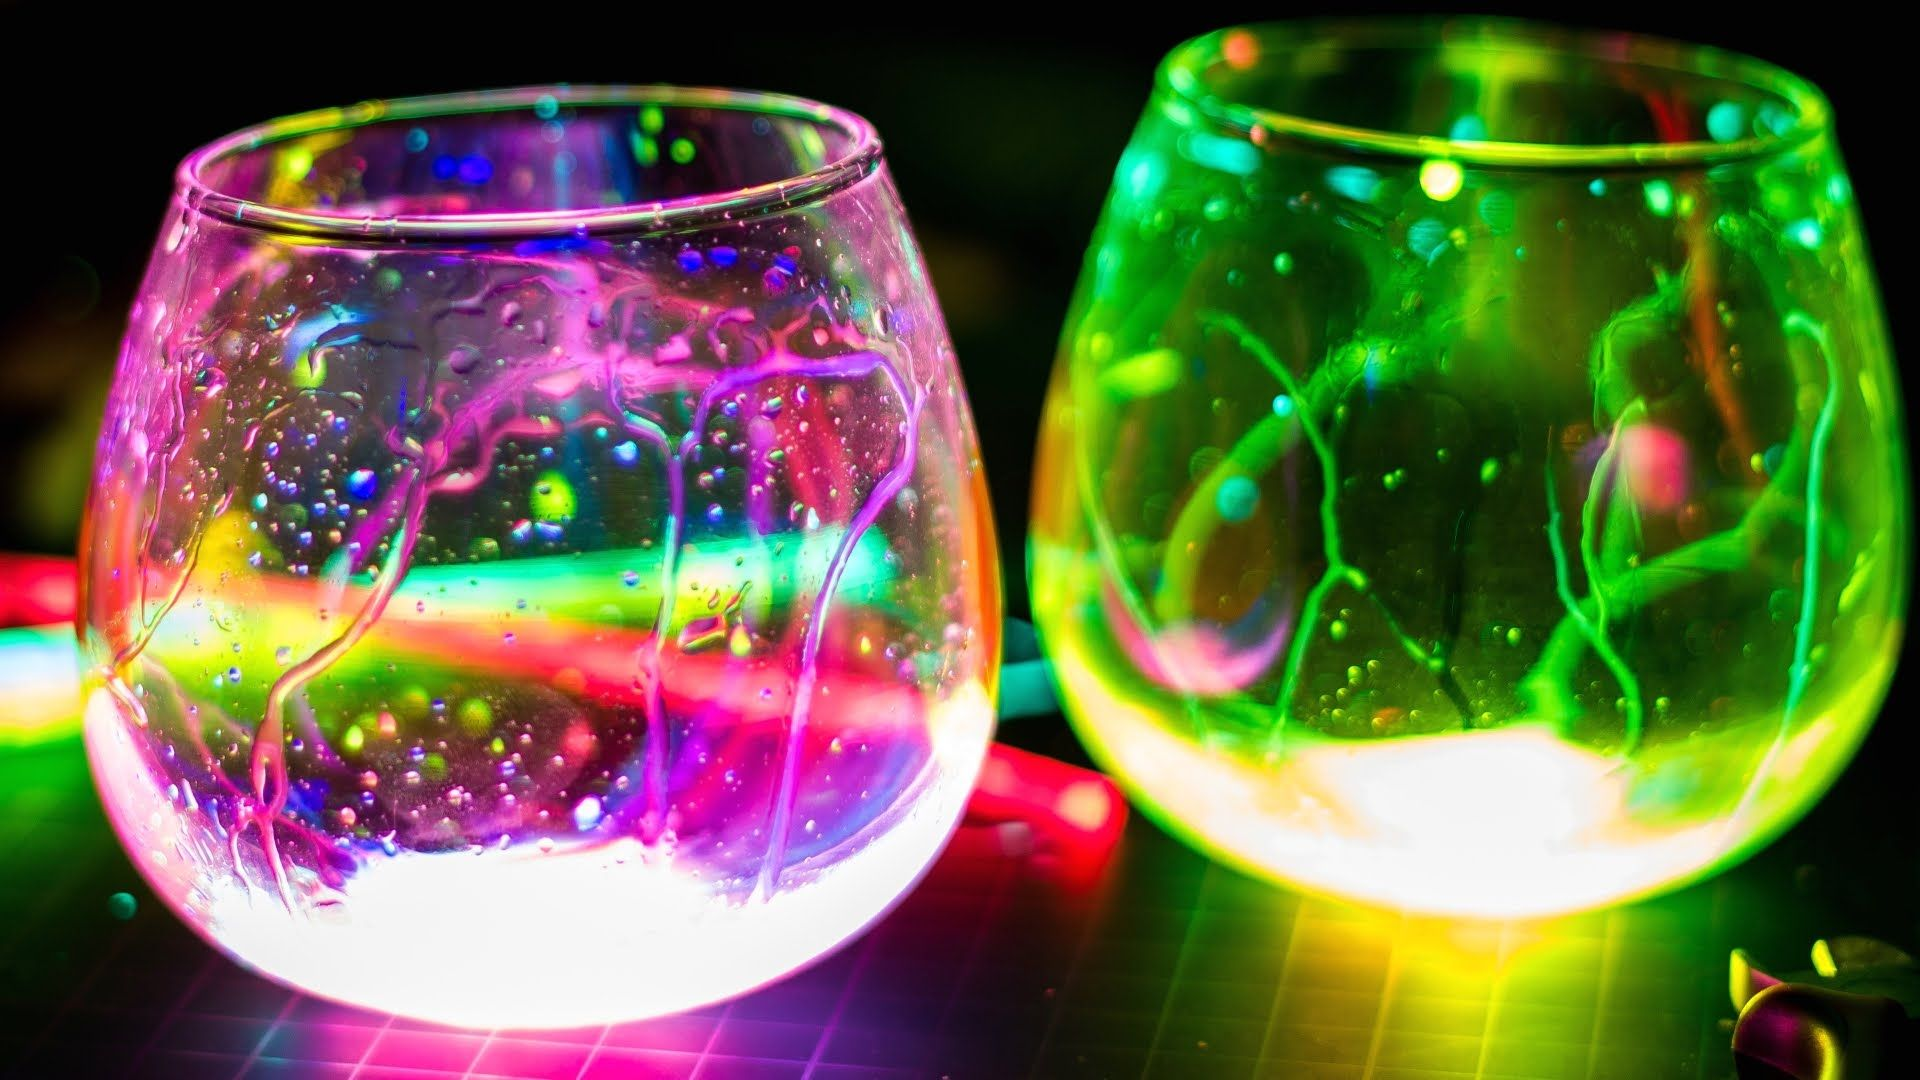 10 Magic And Very Cool Science Experiments You Can Do At Home With